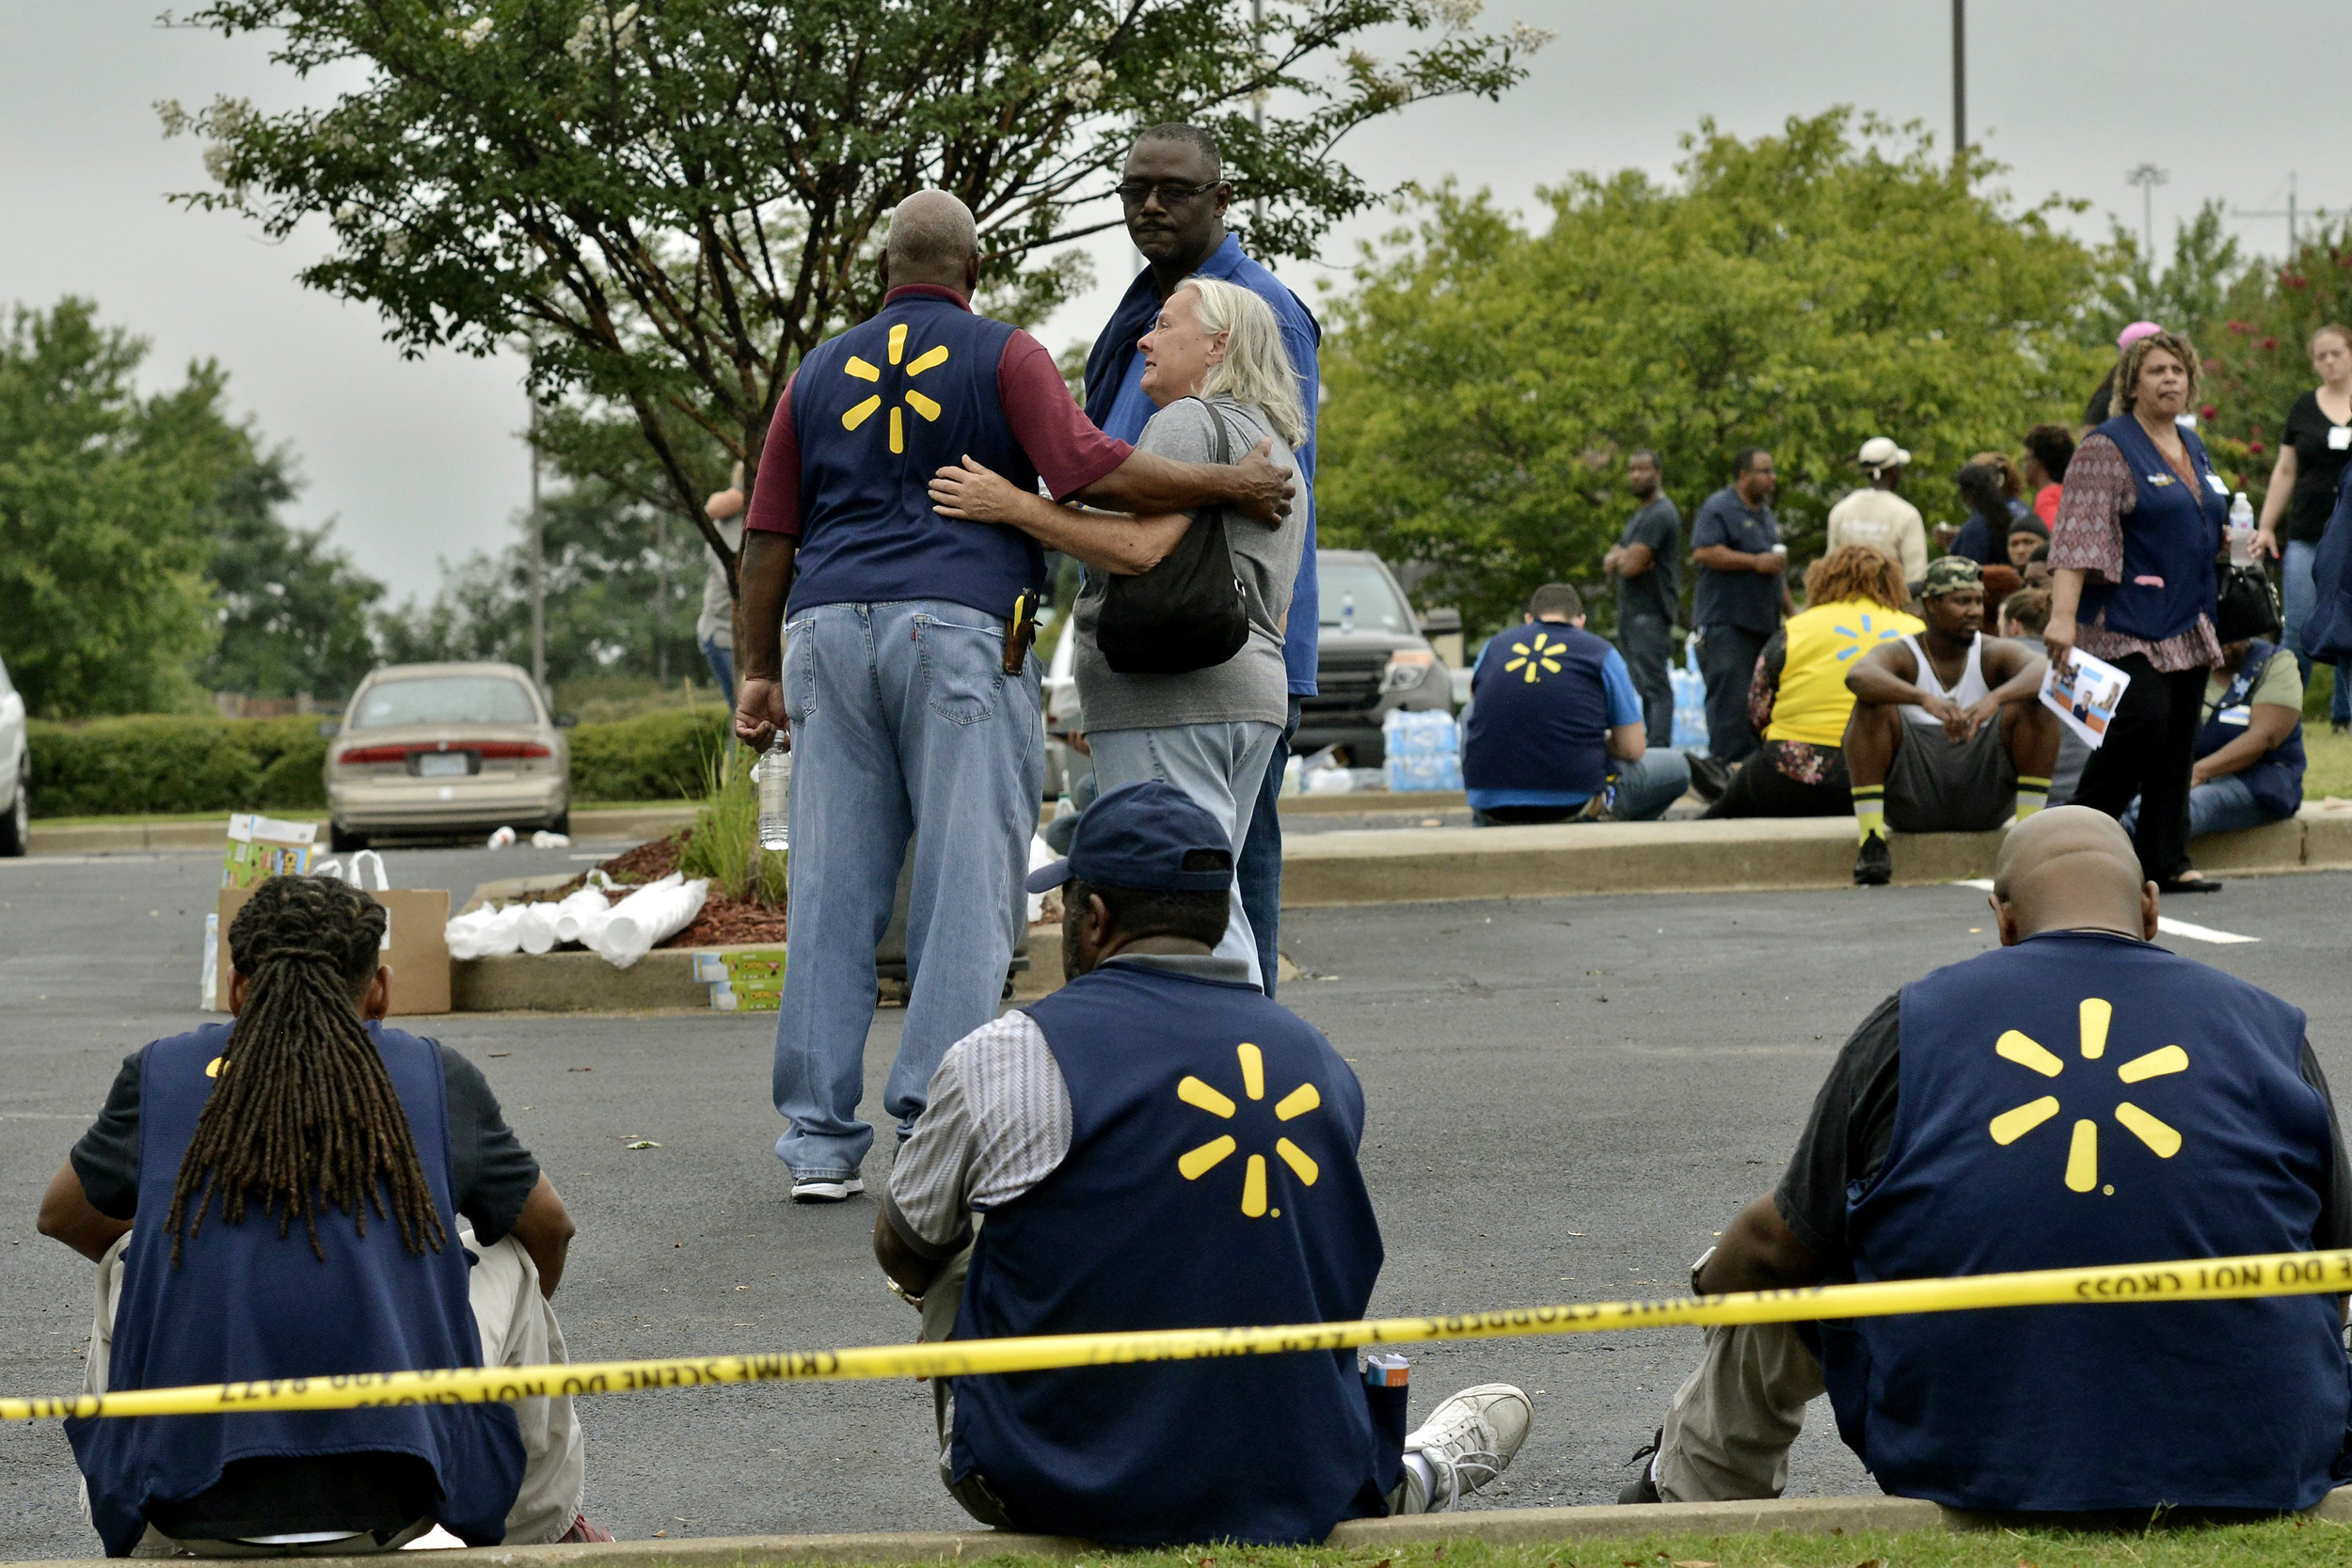 Disgruntled employee' kills 2 co-workers, wounds officer inside